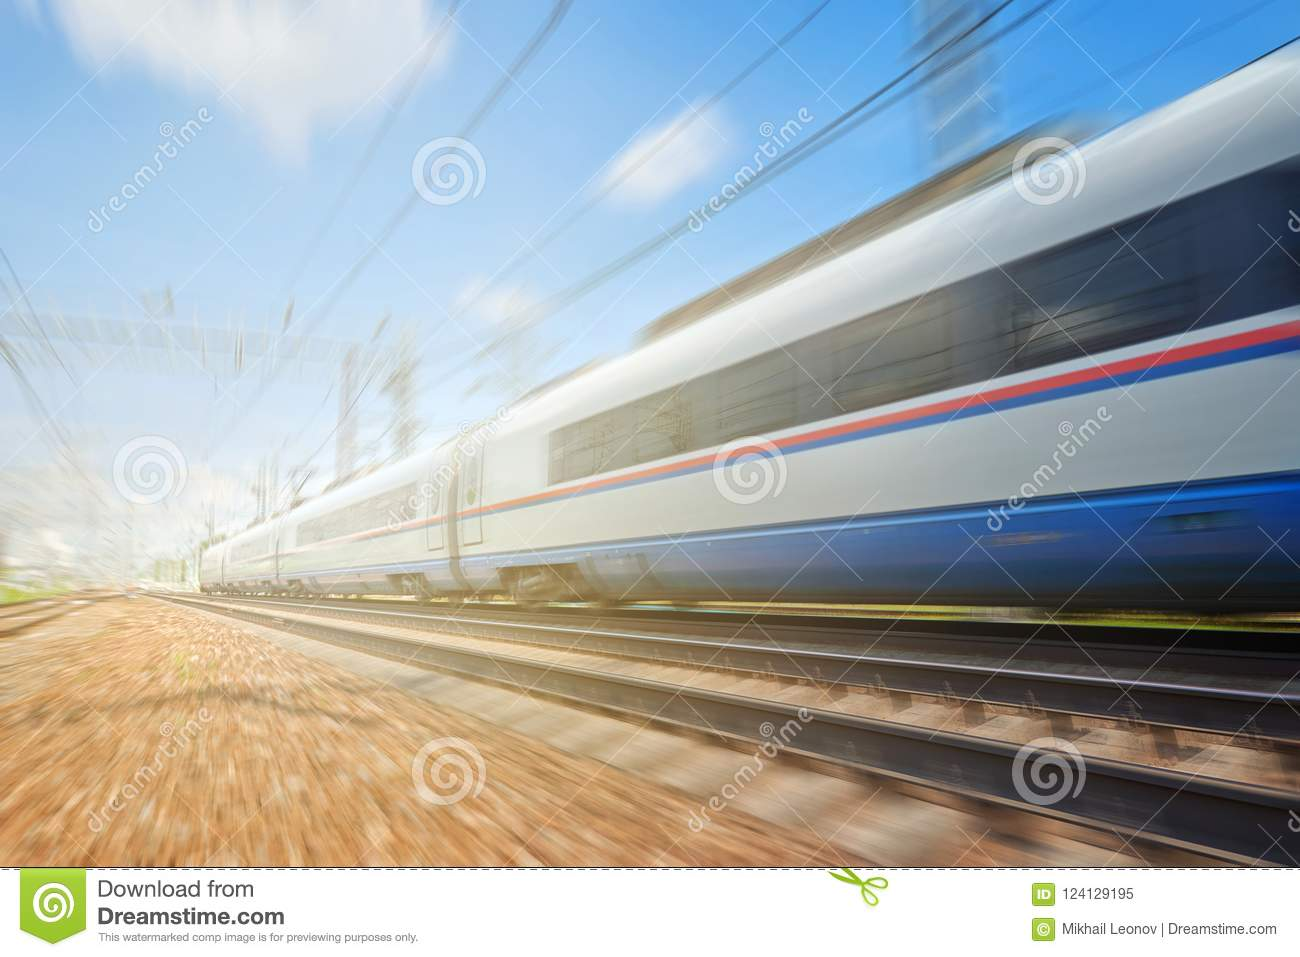 Side view of the moving ultra high speed train runs on rail way with railway infrustructure in the blurred background with flare e